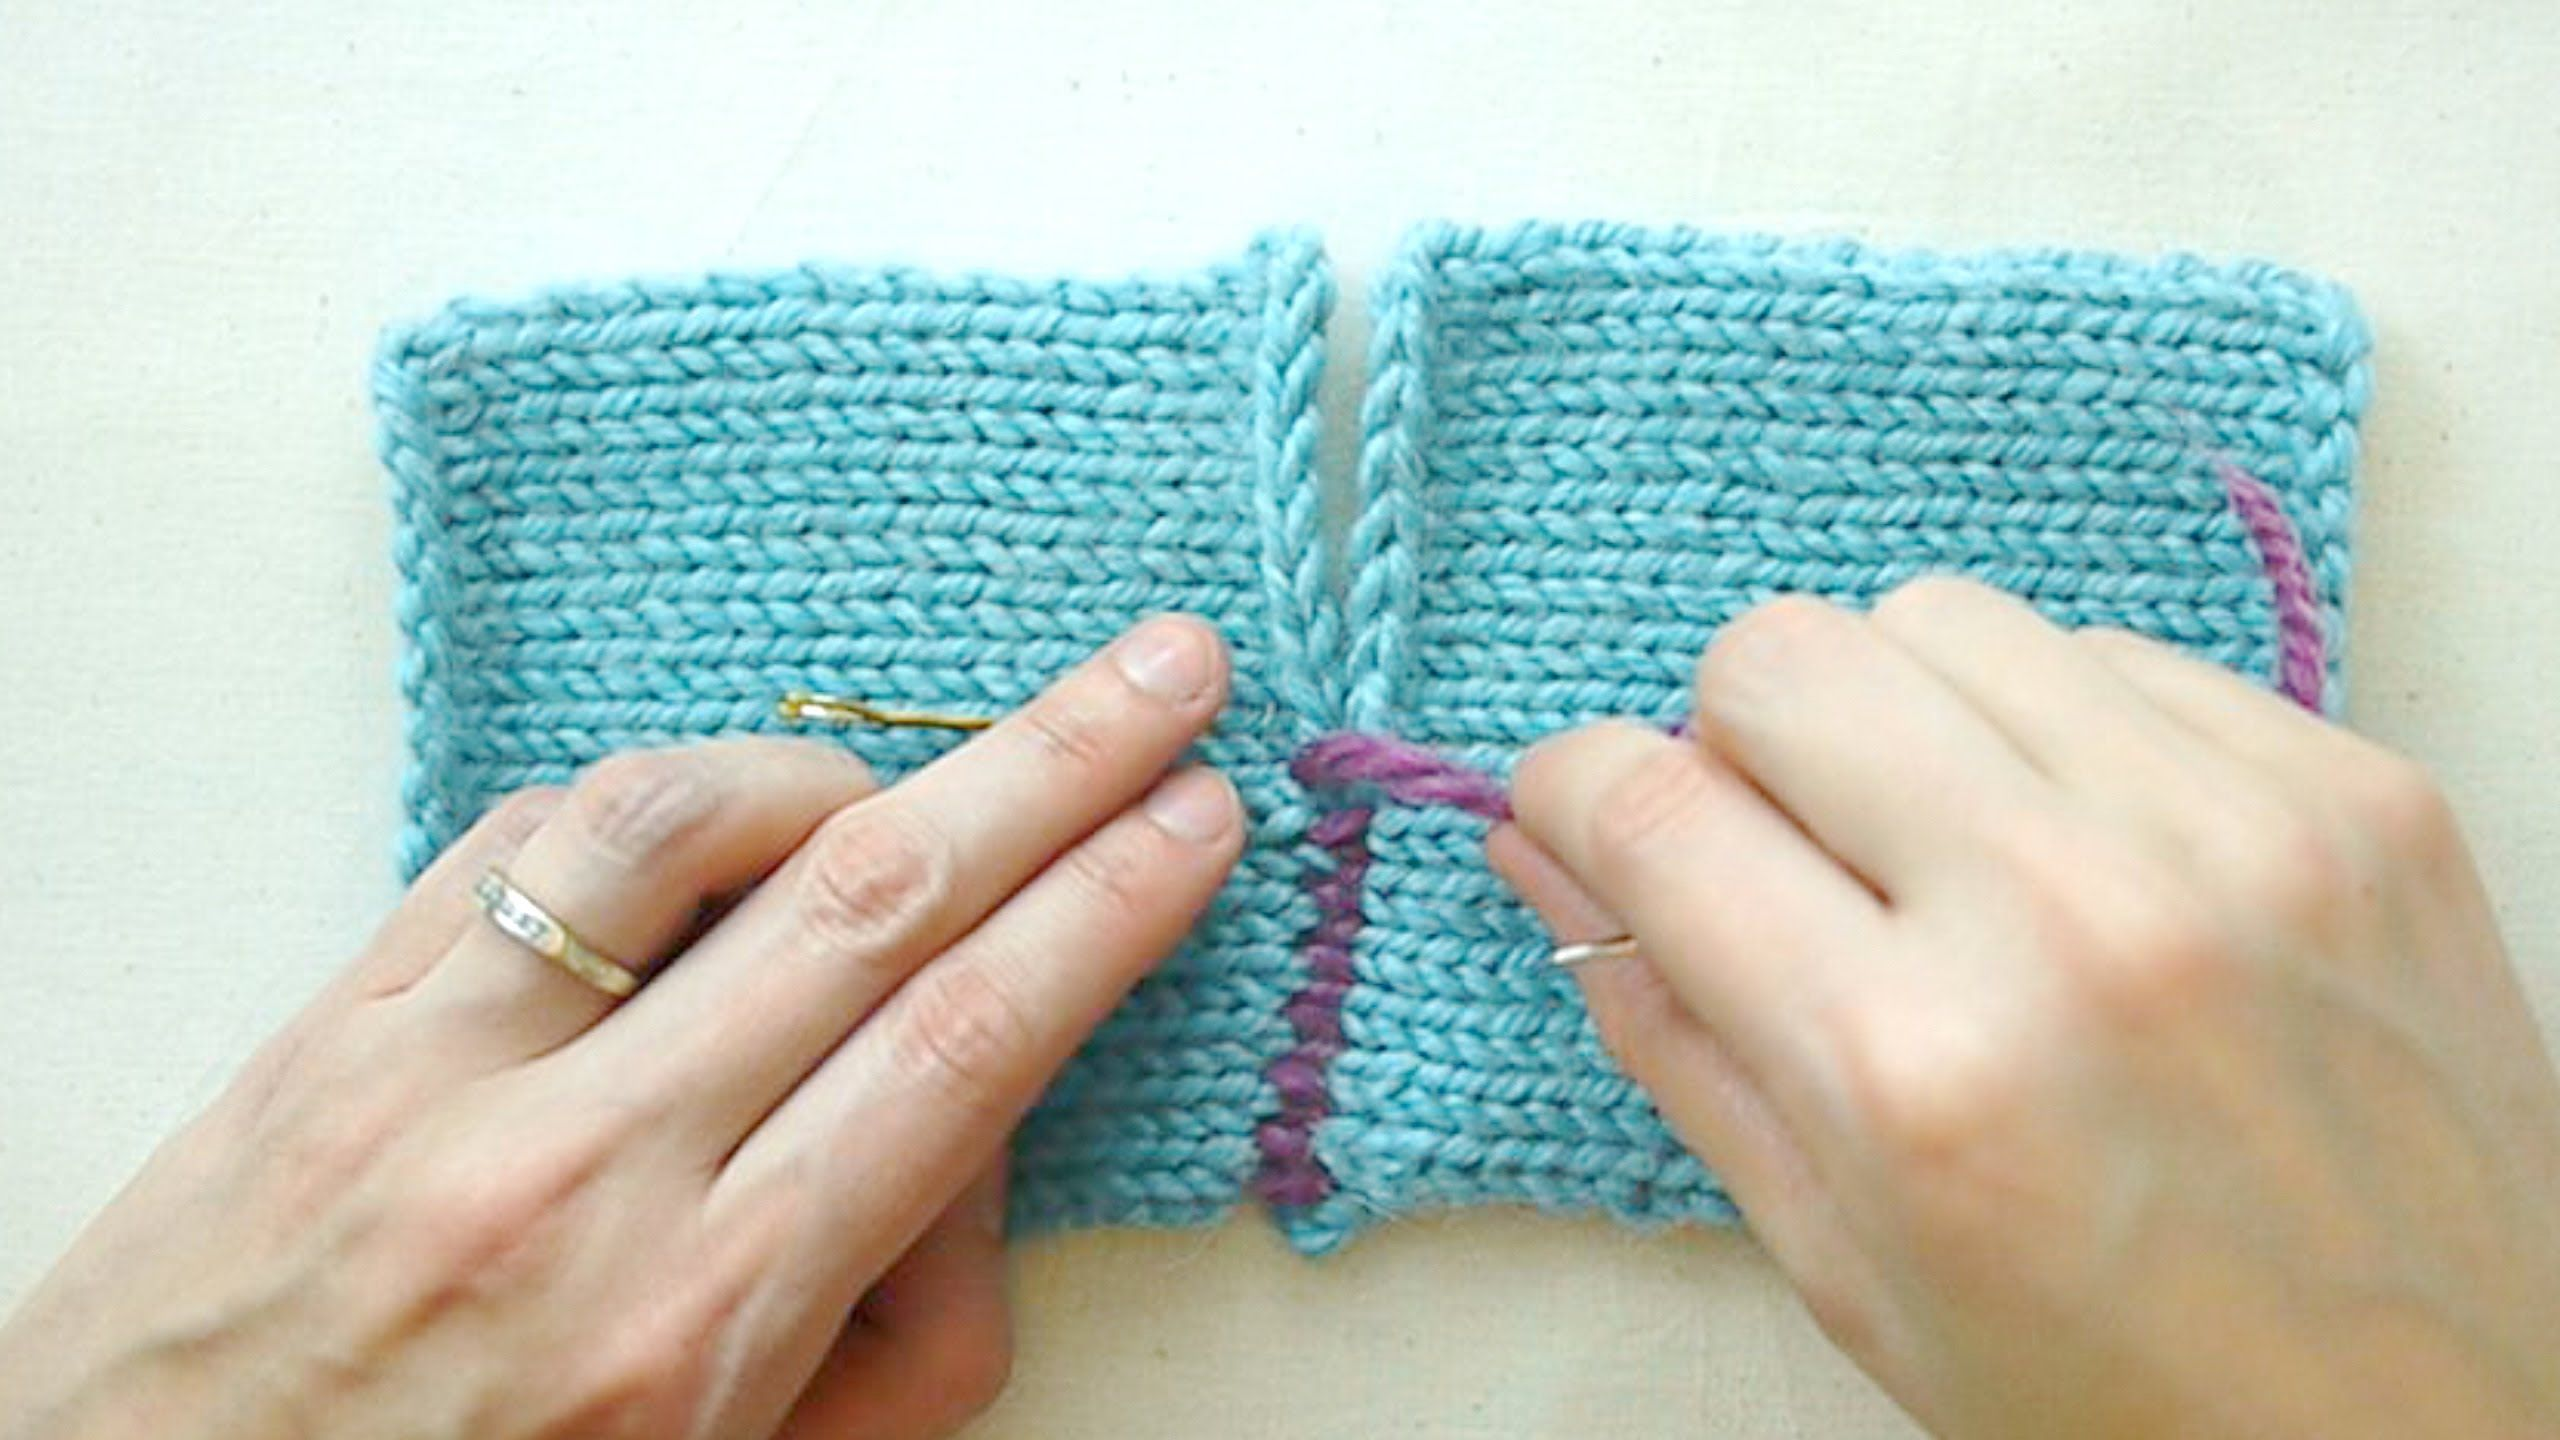 Alexis Winslow shows you how to sew seams on a knitted garment using ...